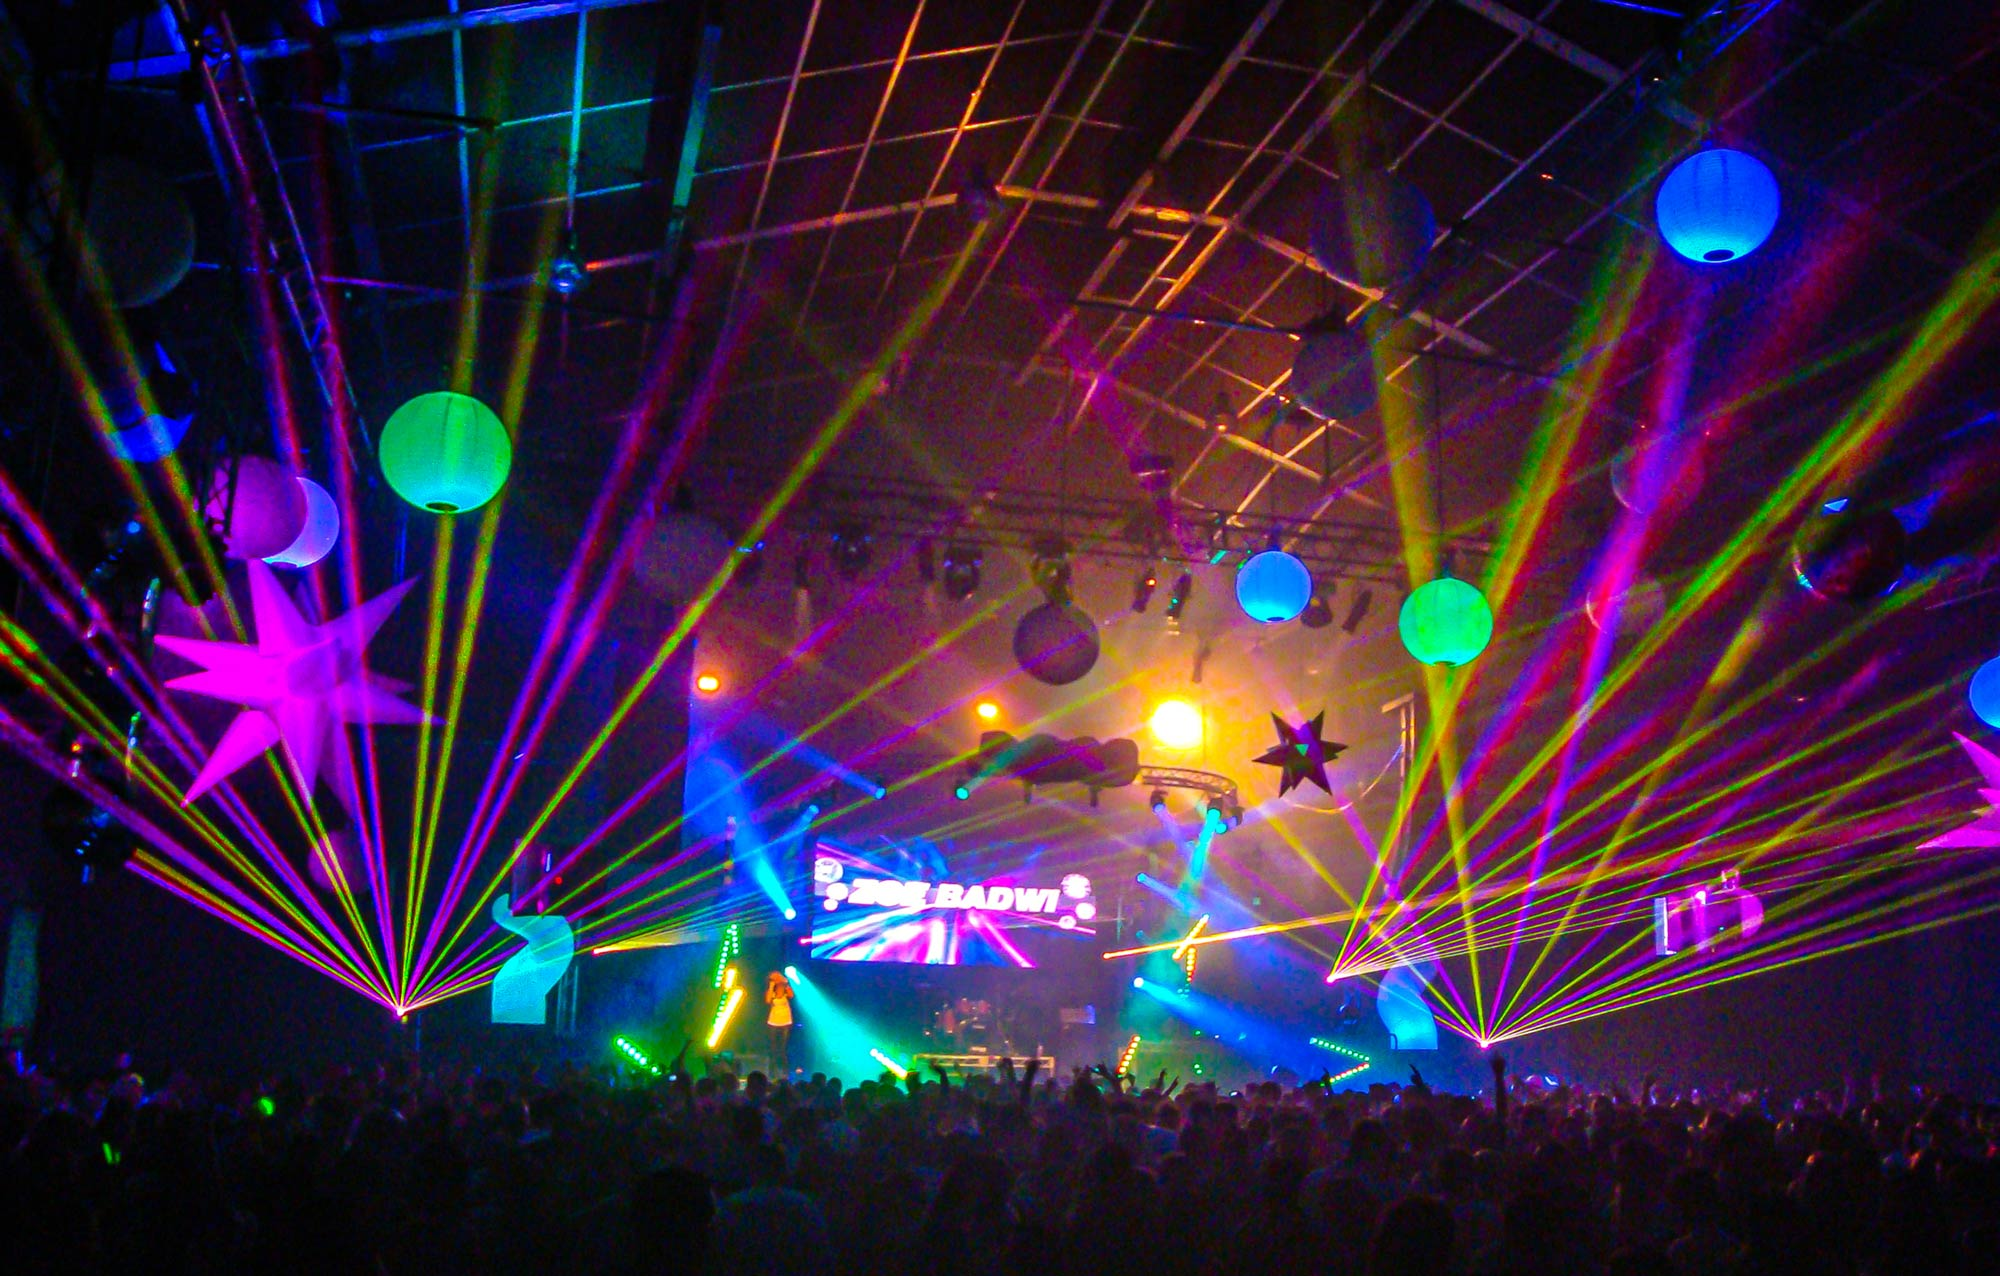 Harbour Party NYE at Sydney produced by Modular Event Solutions